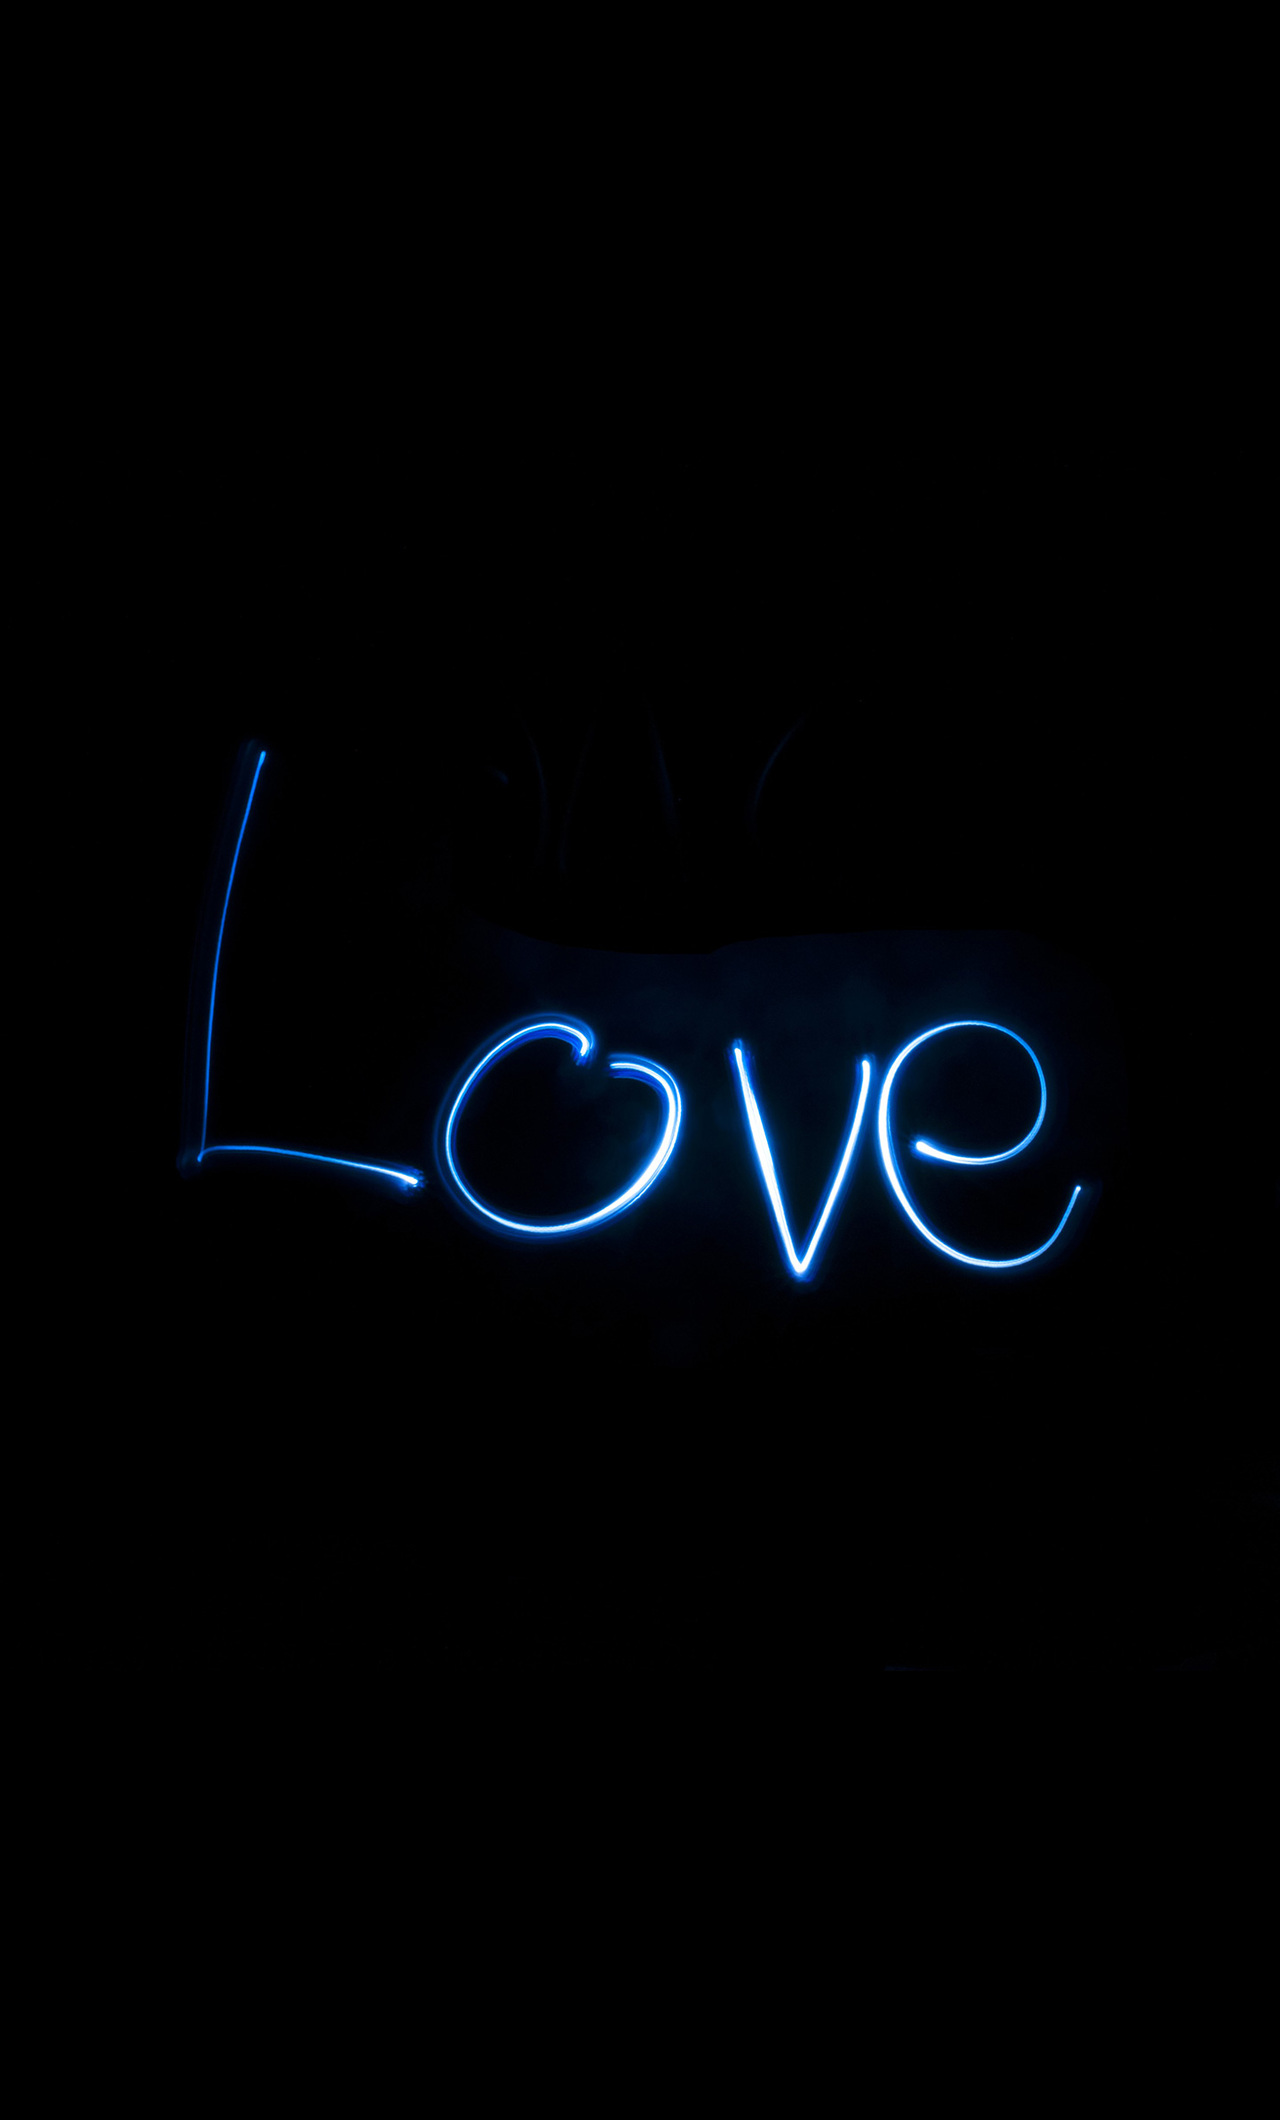 love-long-exposure-typography-b5.jpg